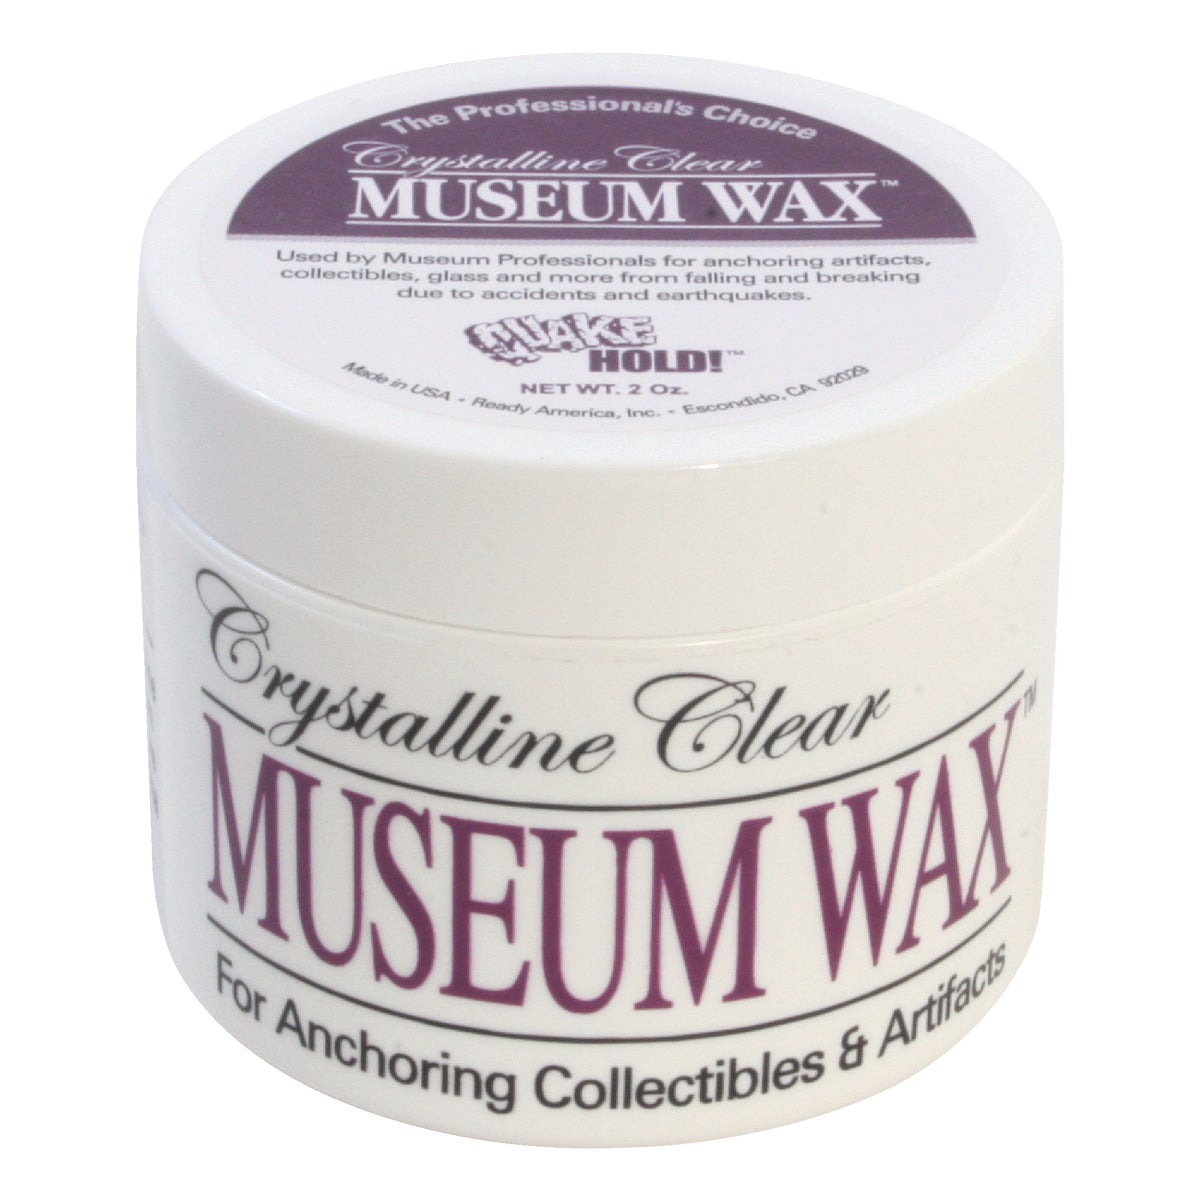 2 OZ MUSEUM WAX - 66111 by Ready America Inc